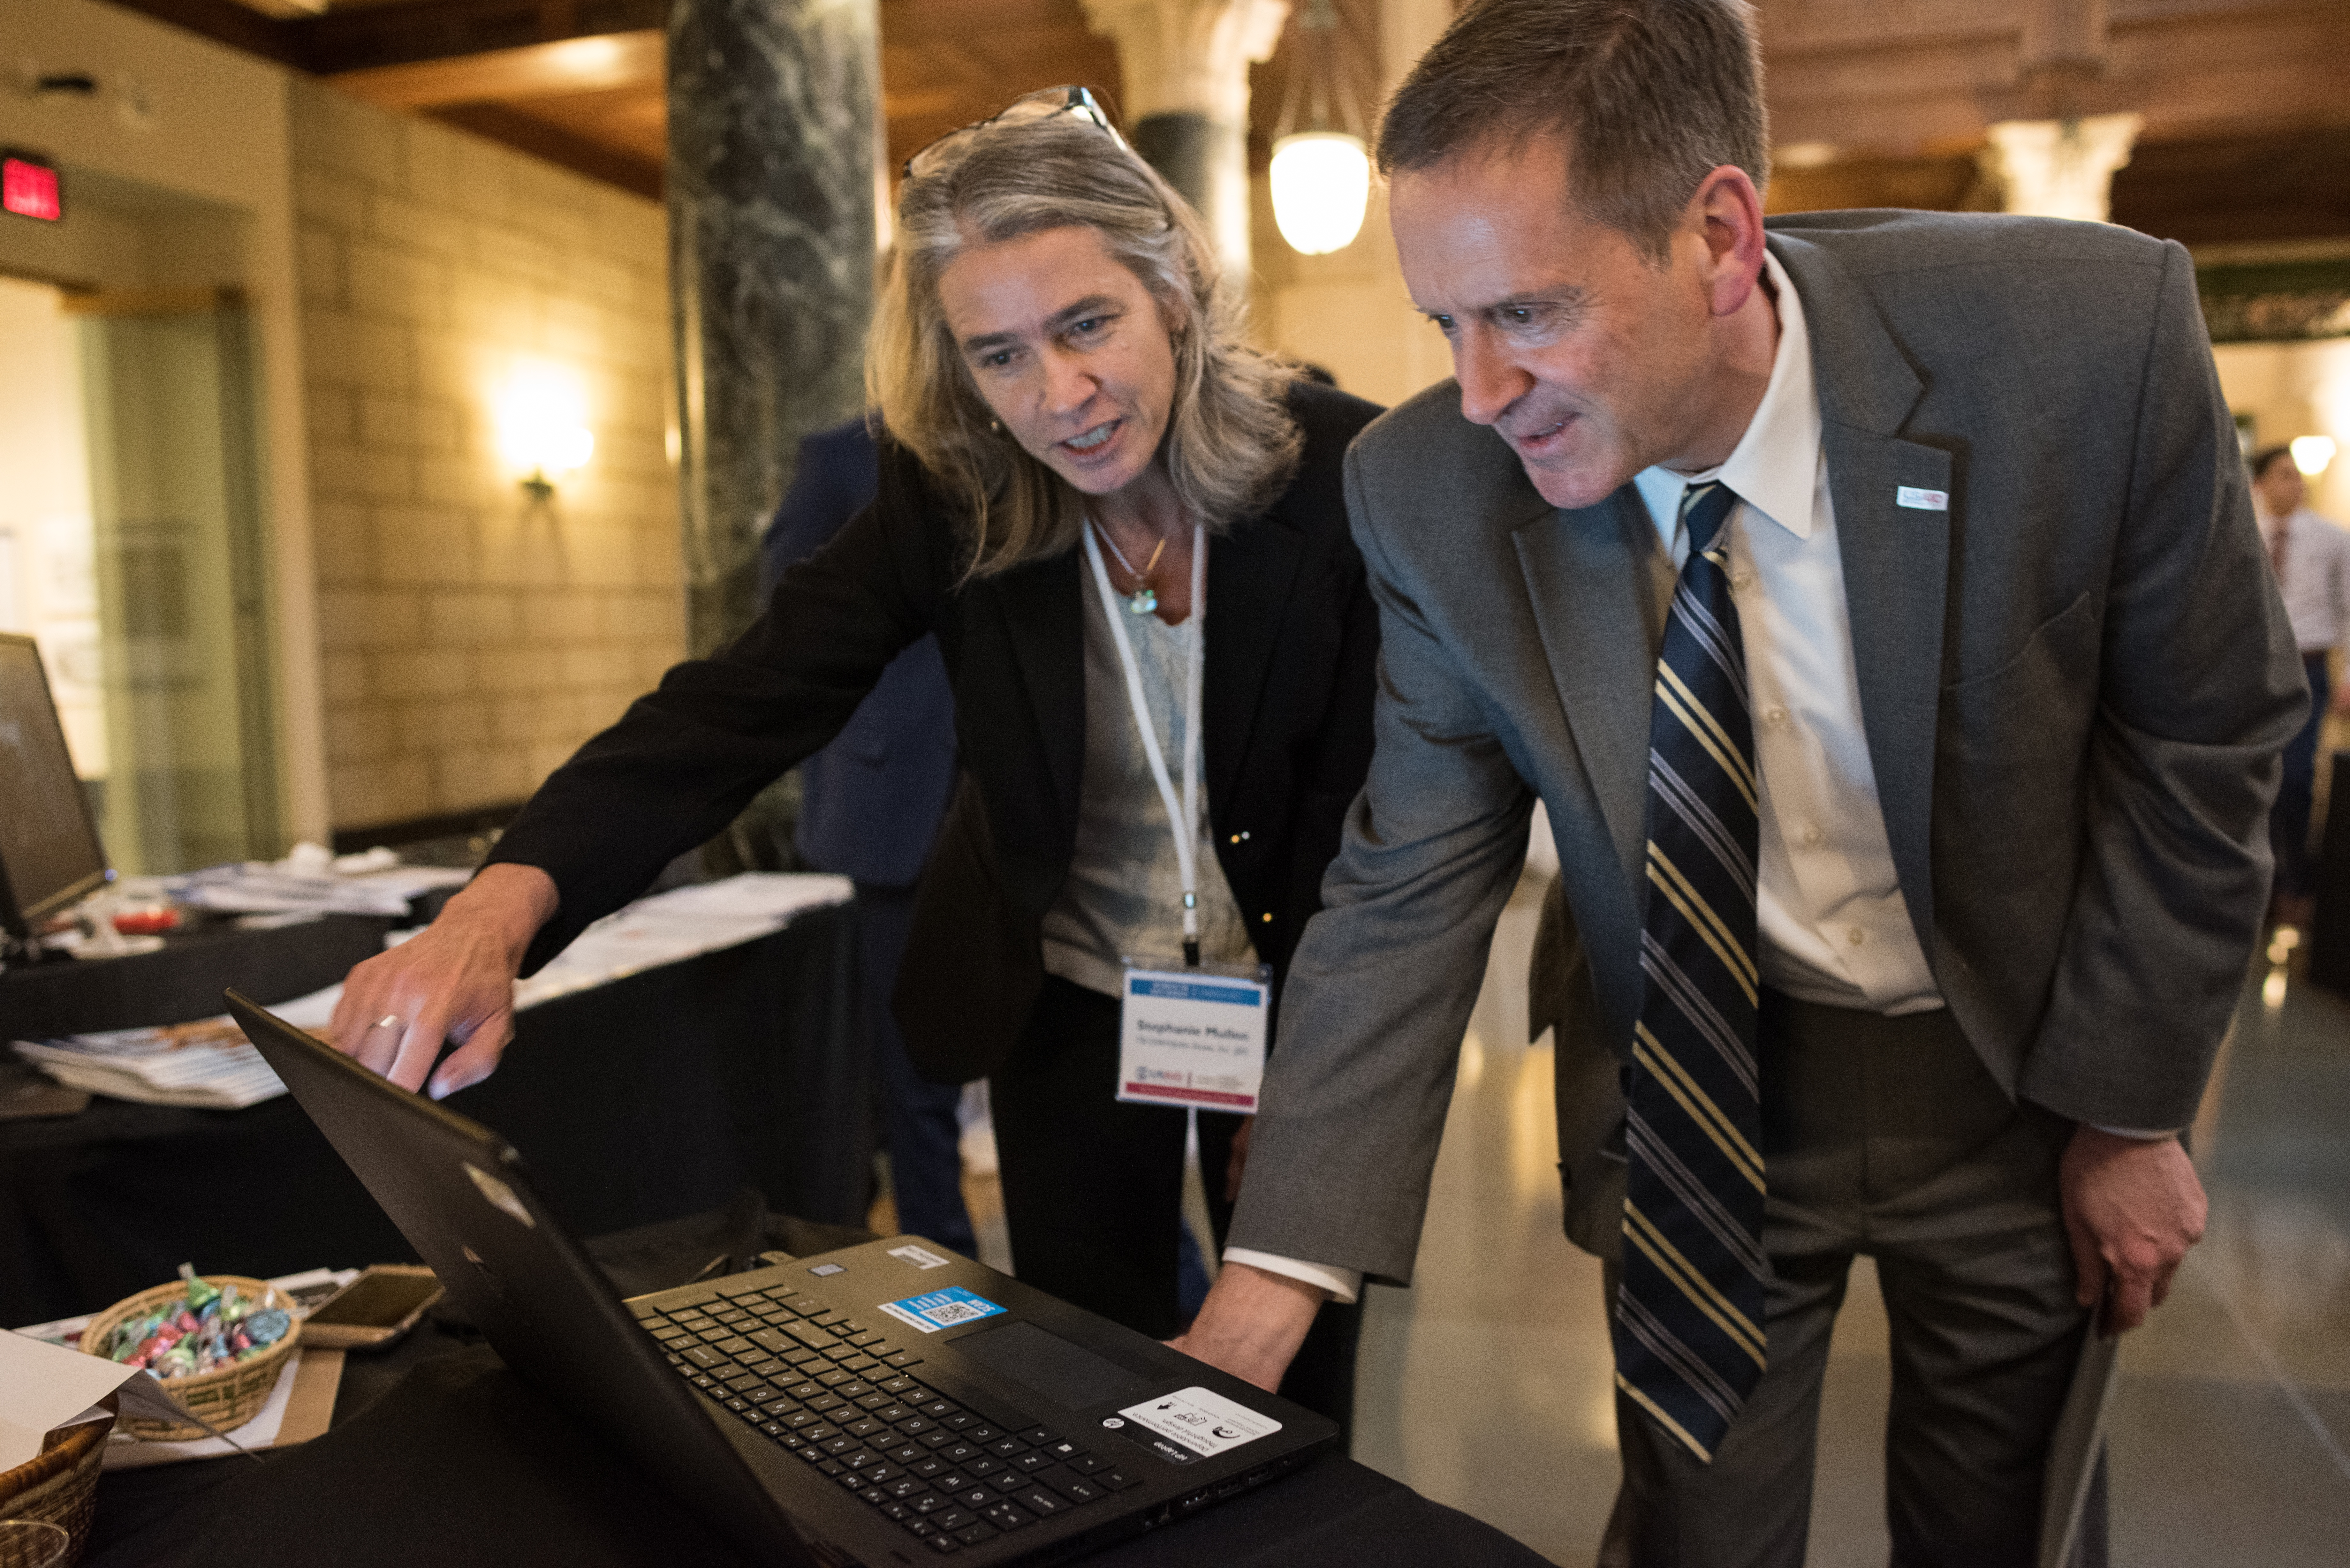 JSI's Stephanie Mullen, Project Director for TB DIAH, shows USAID Administrator, Mark Green, the data hub dashboard